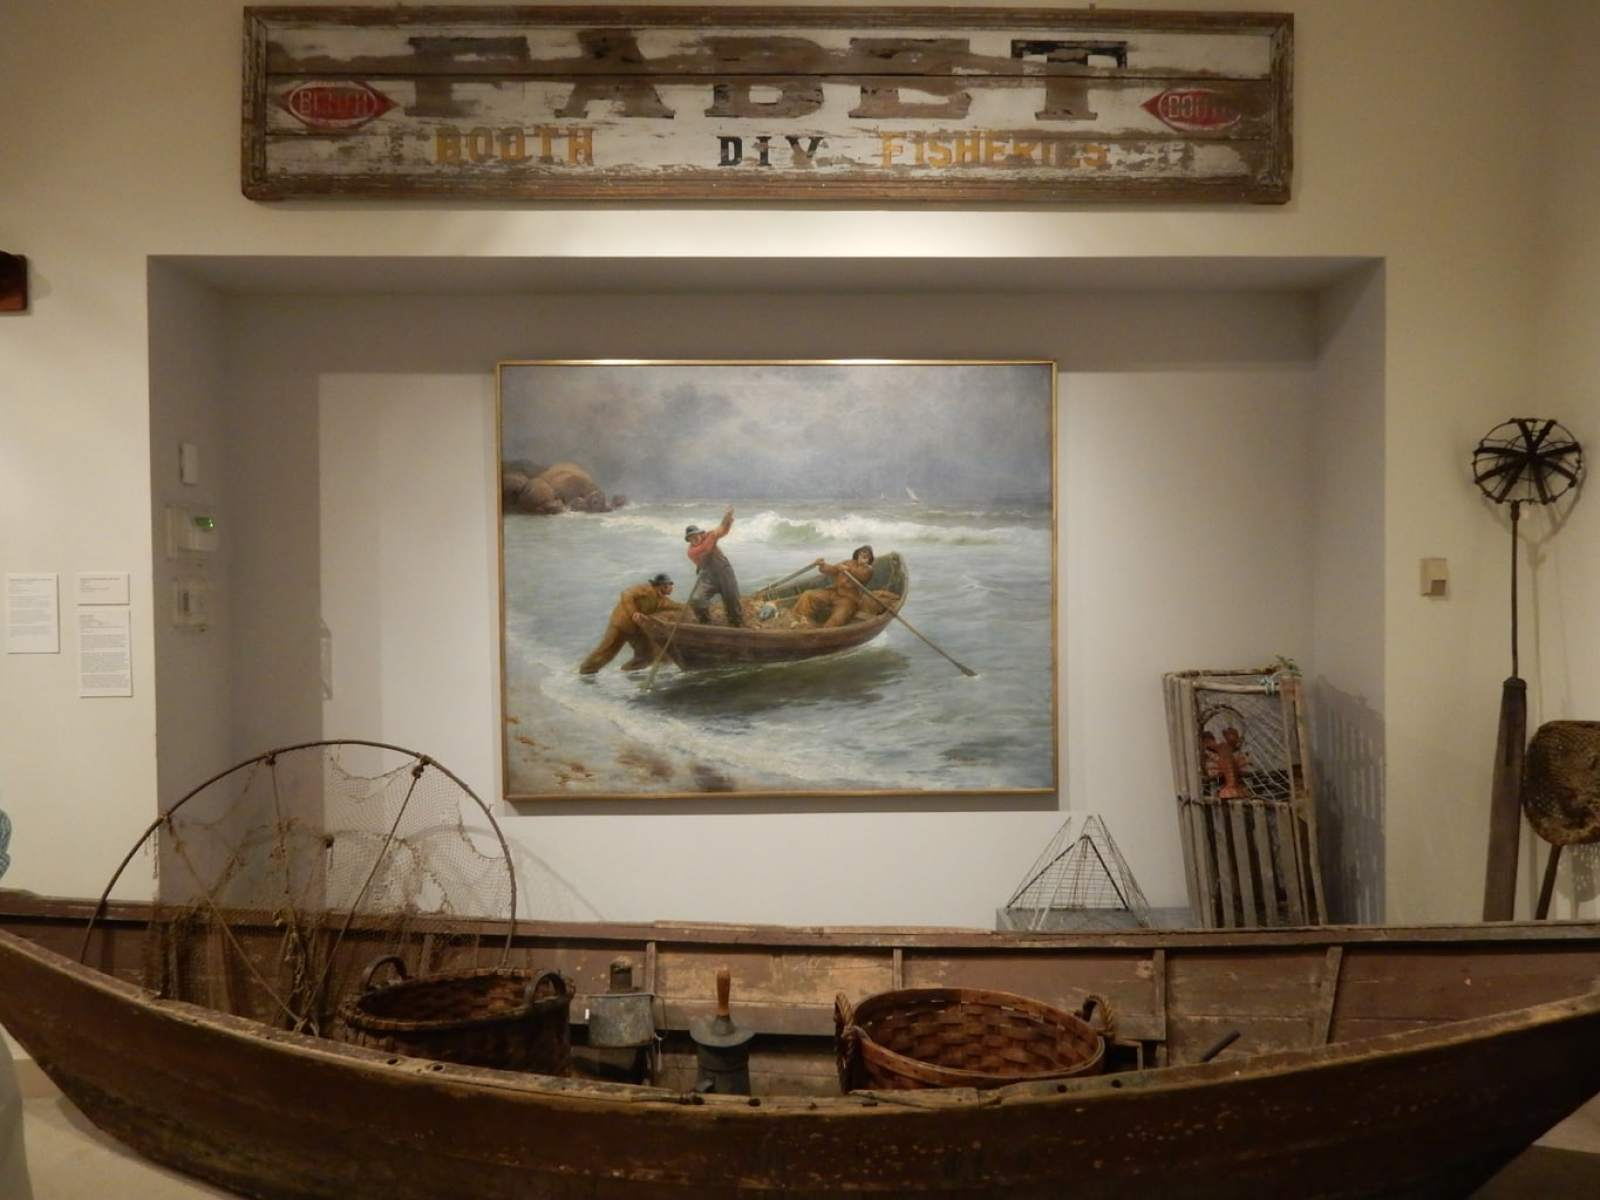 Cape Ann Museum of Art and History Gloucester MA